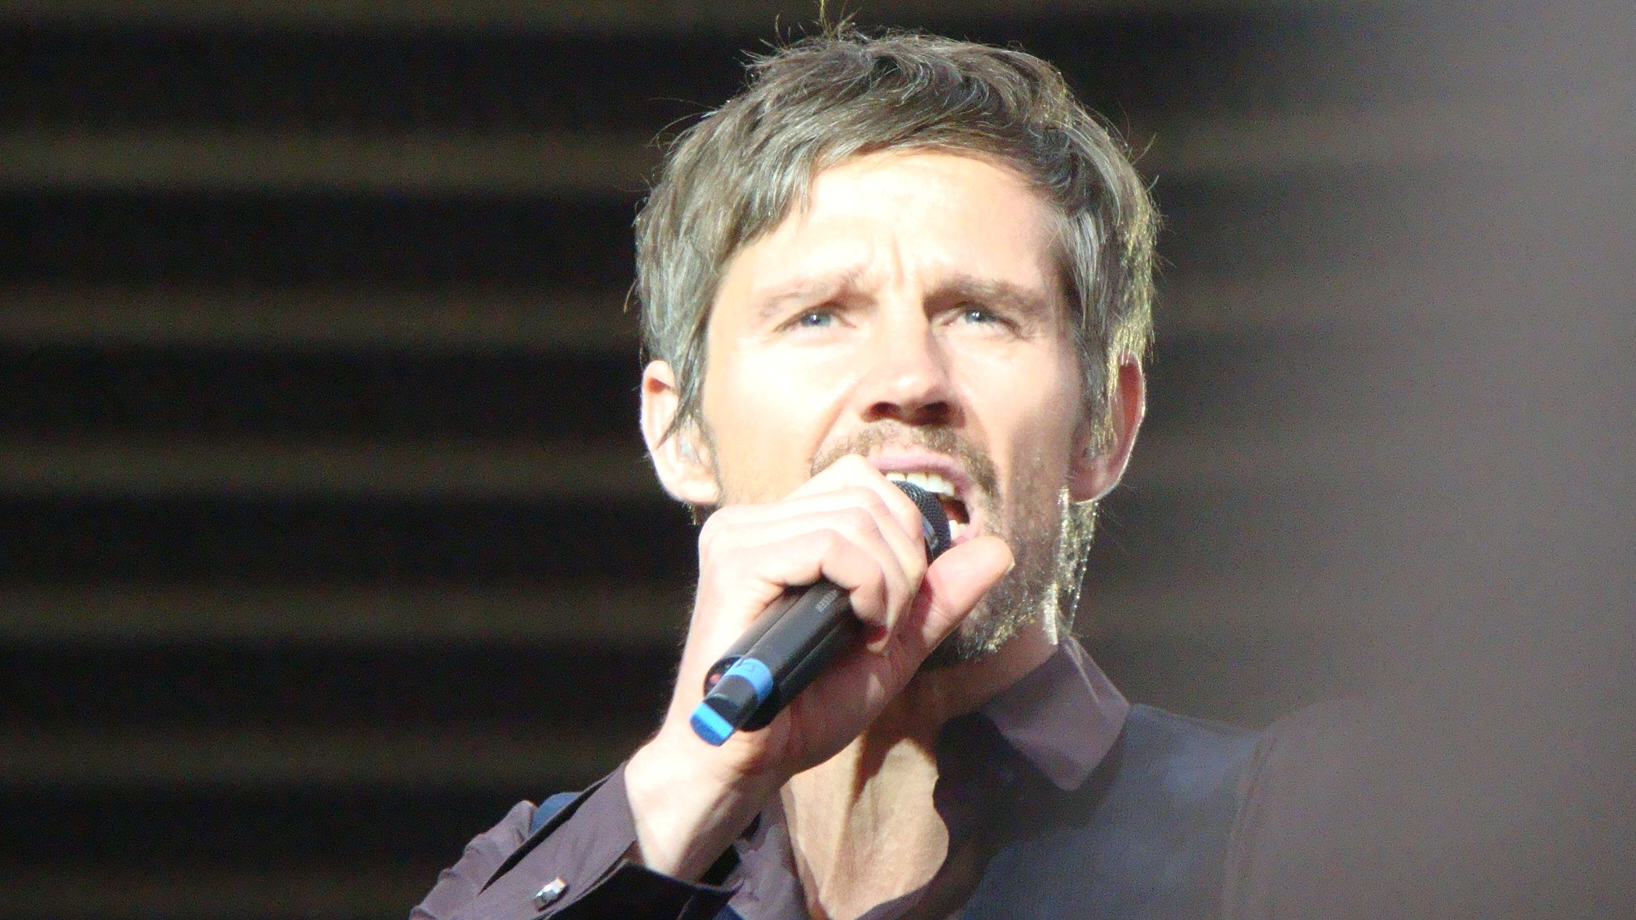 Jason Orange Größe